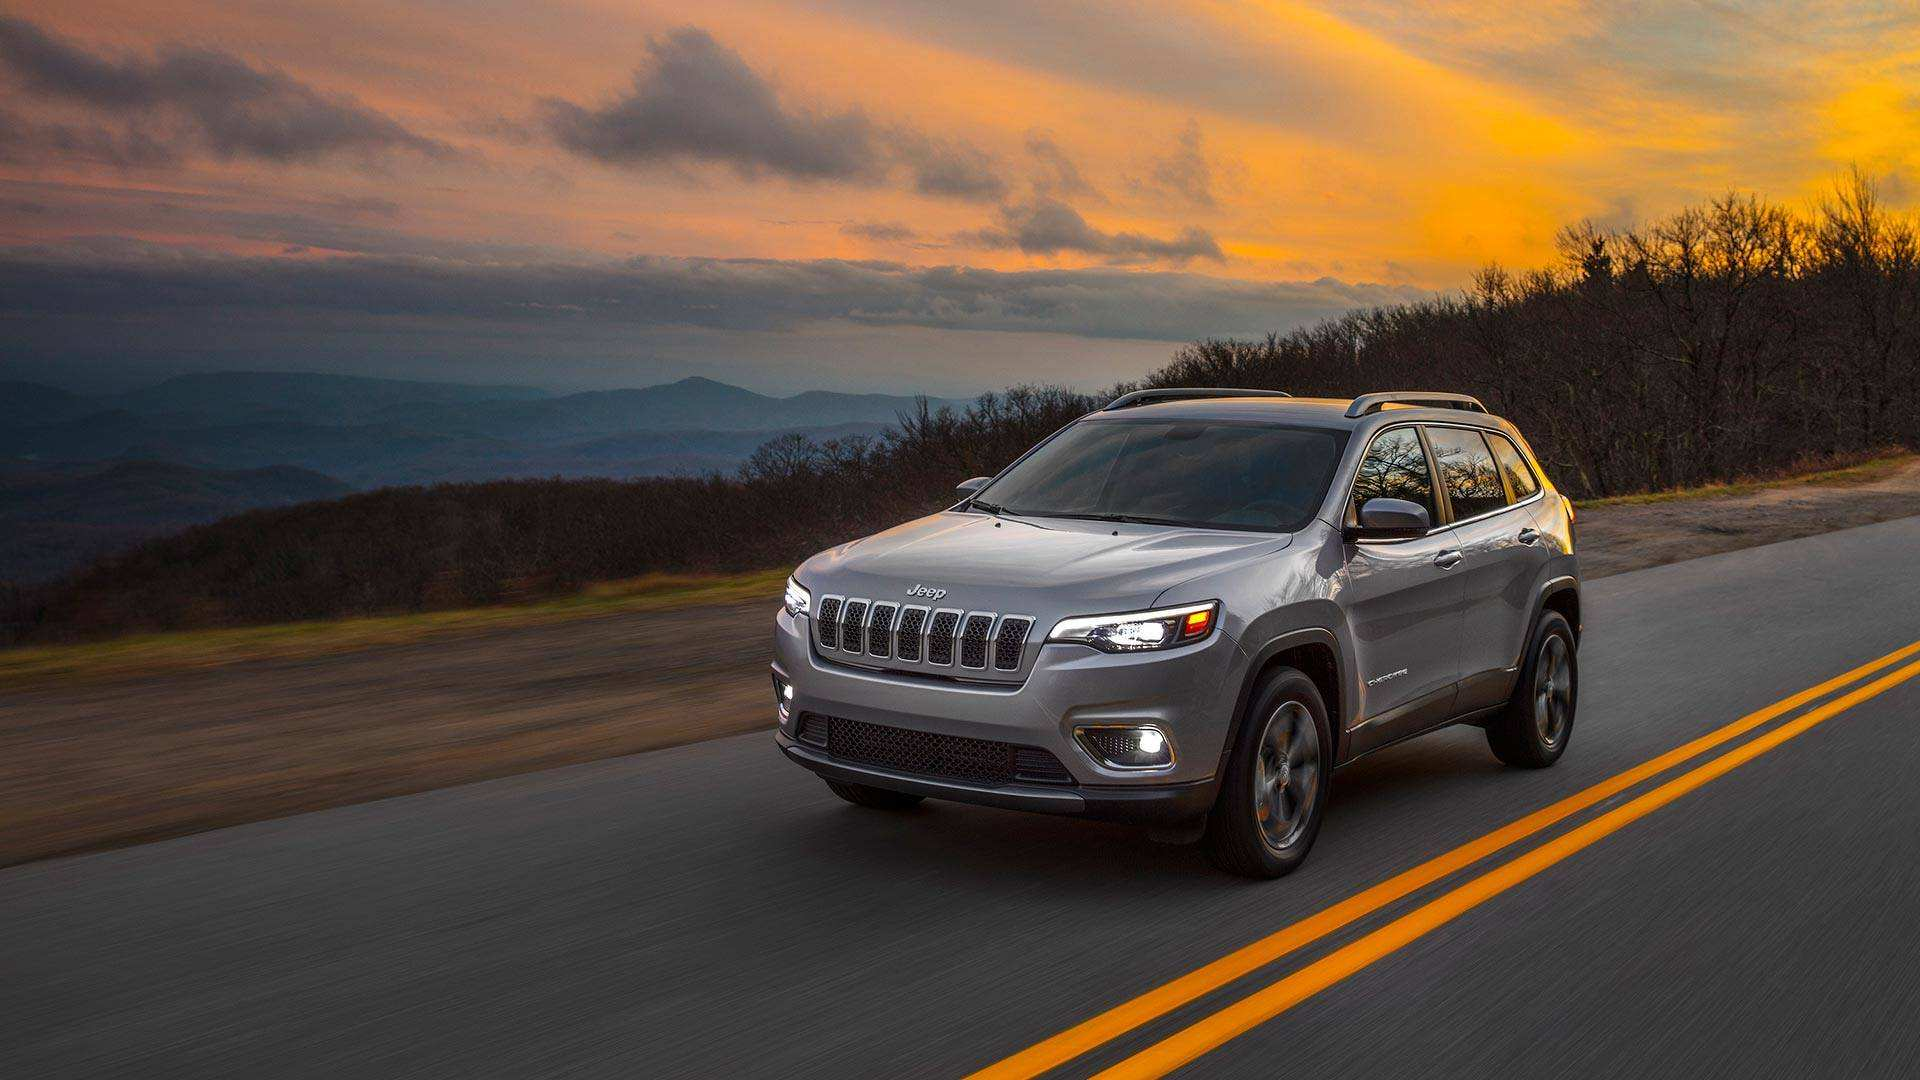 19 All New 2019 Jeep Trailhawk Towing Capacity New Concept